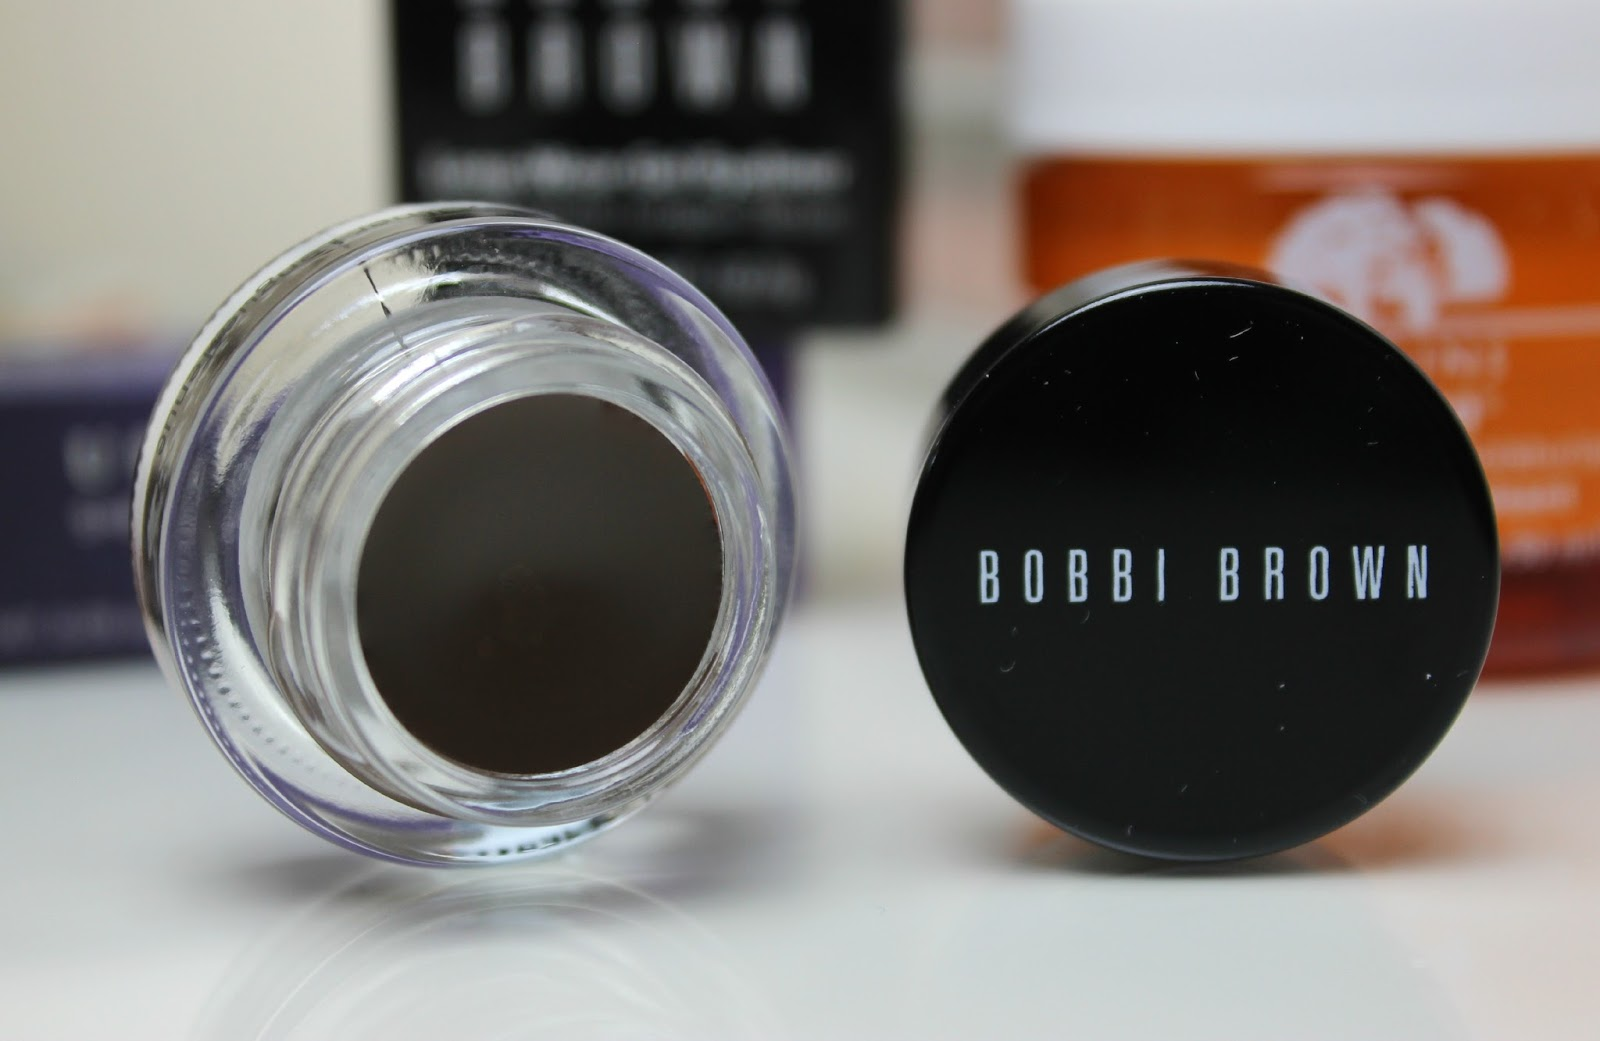 A picture of Bobbi Brown Long-Wear Gel Liner in Sepia Ink